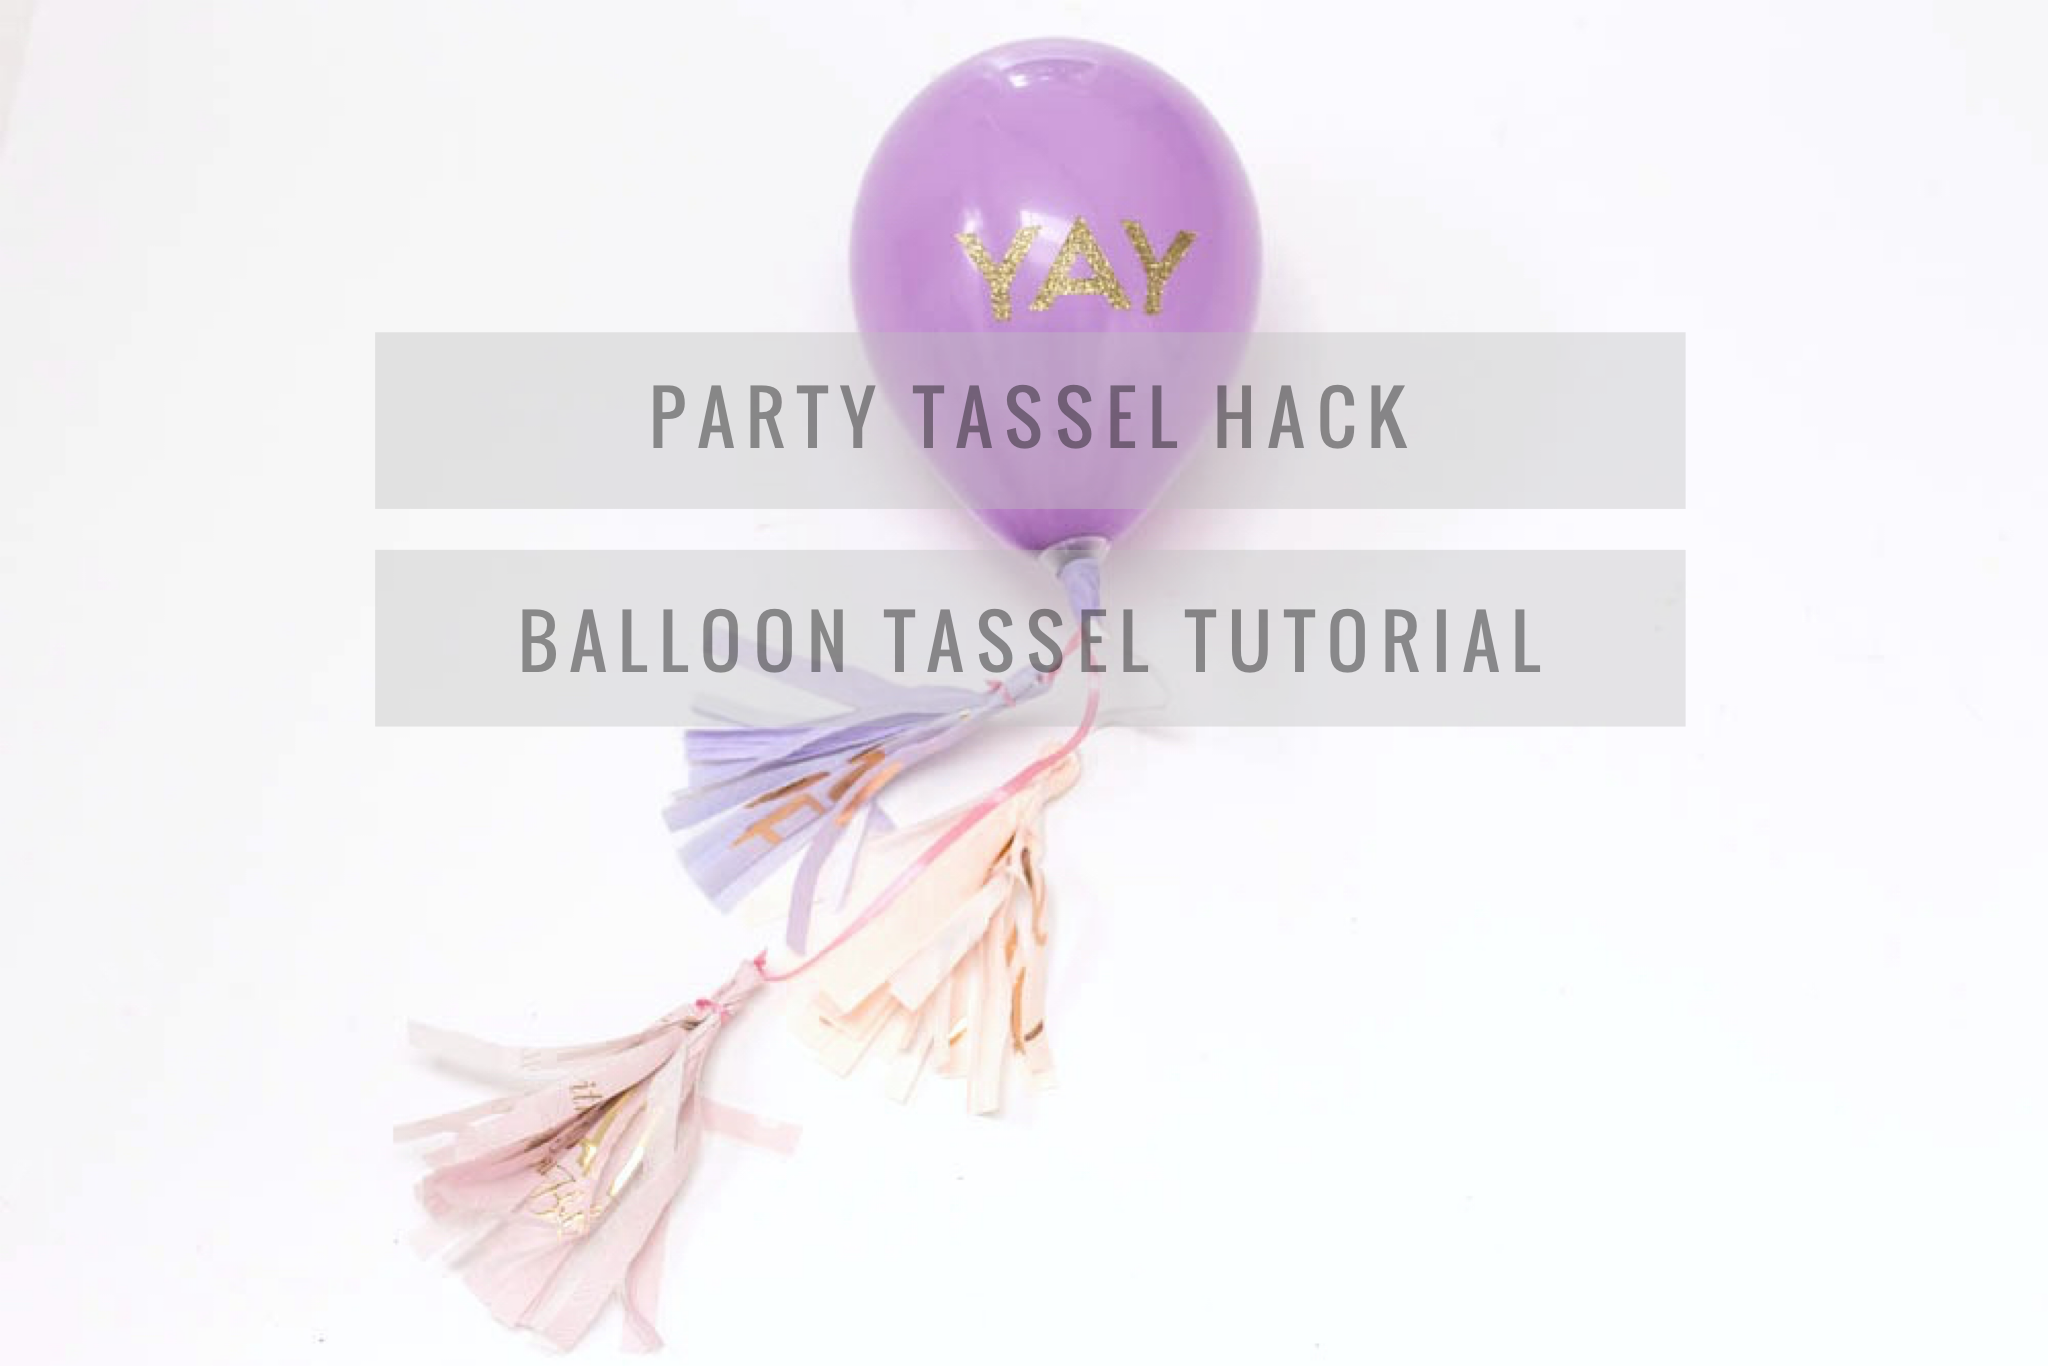 Party Tassels Hack